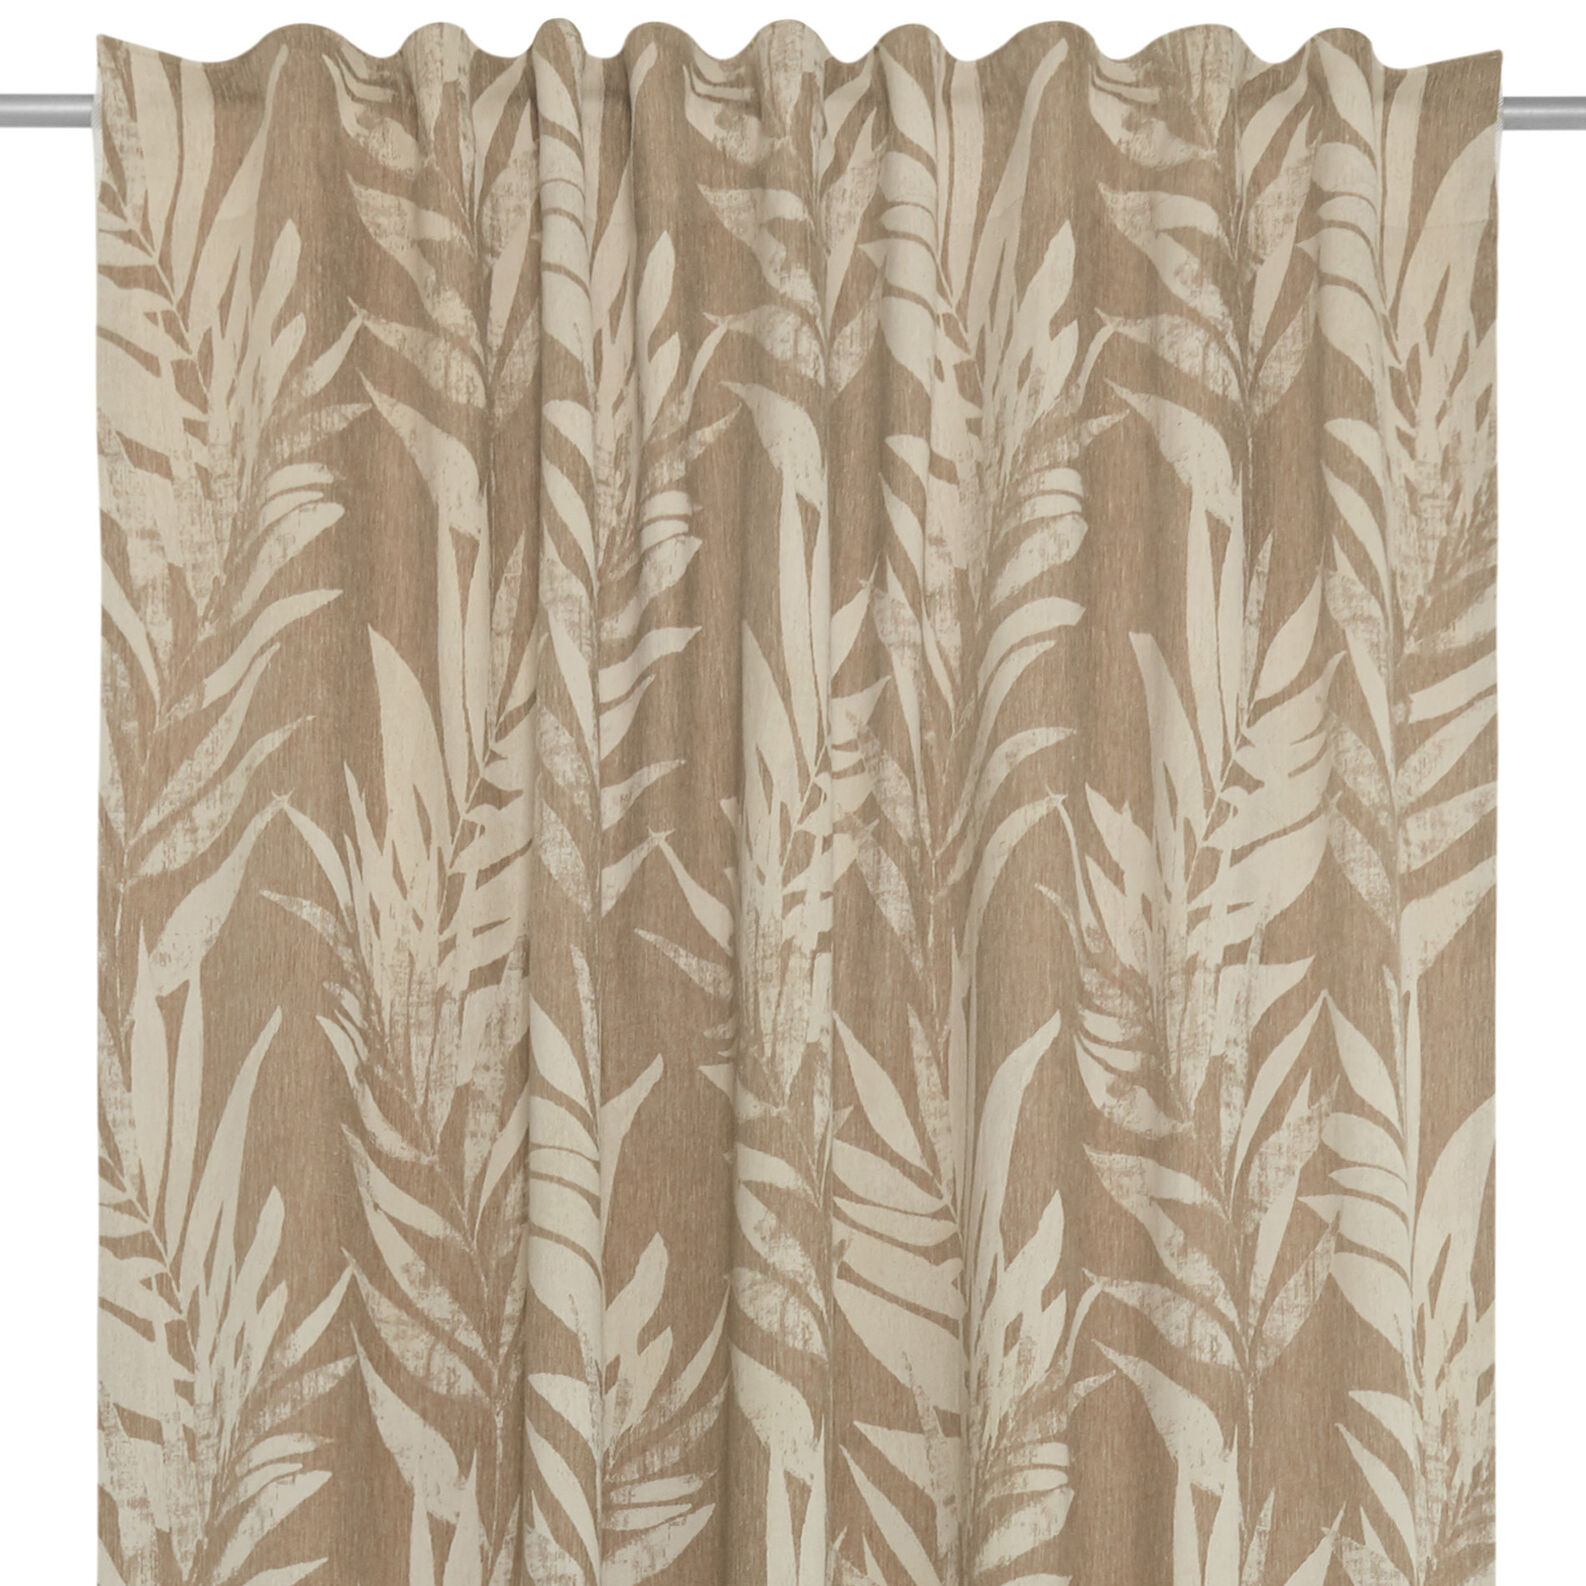 Cotton blend curtain with hidden loops and leaf design